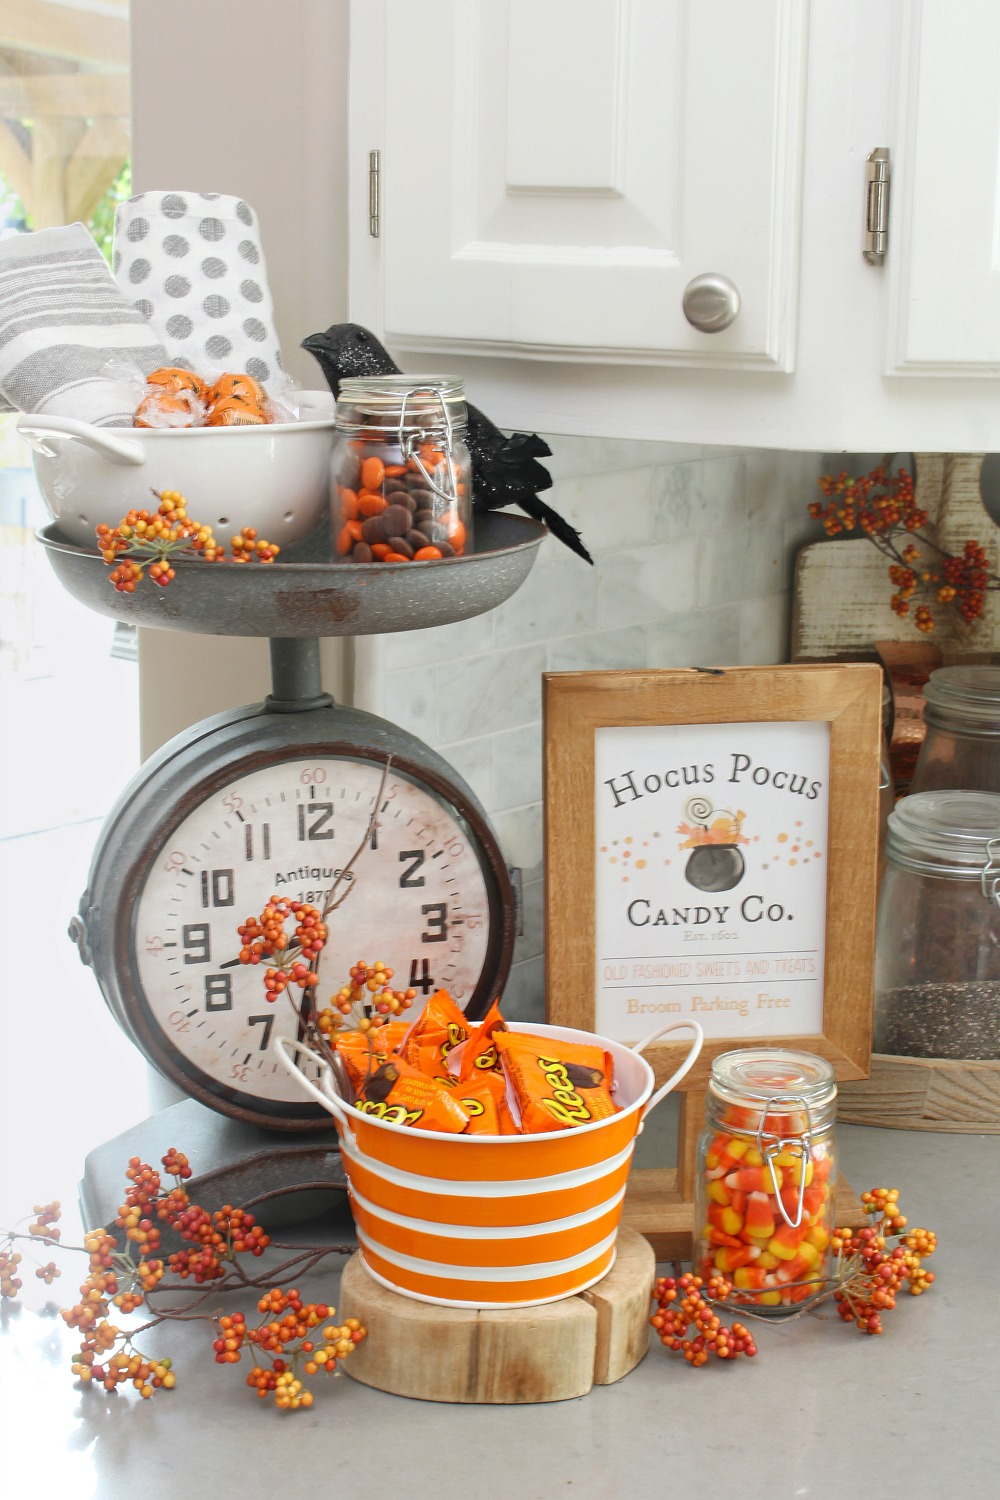 Hocus Pocus Candy Co. free Halloween printable used for a fun Halloween candy bar.